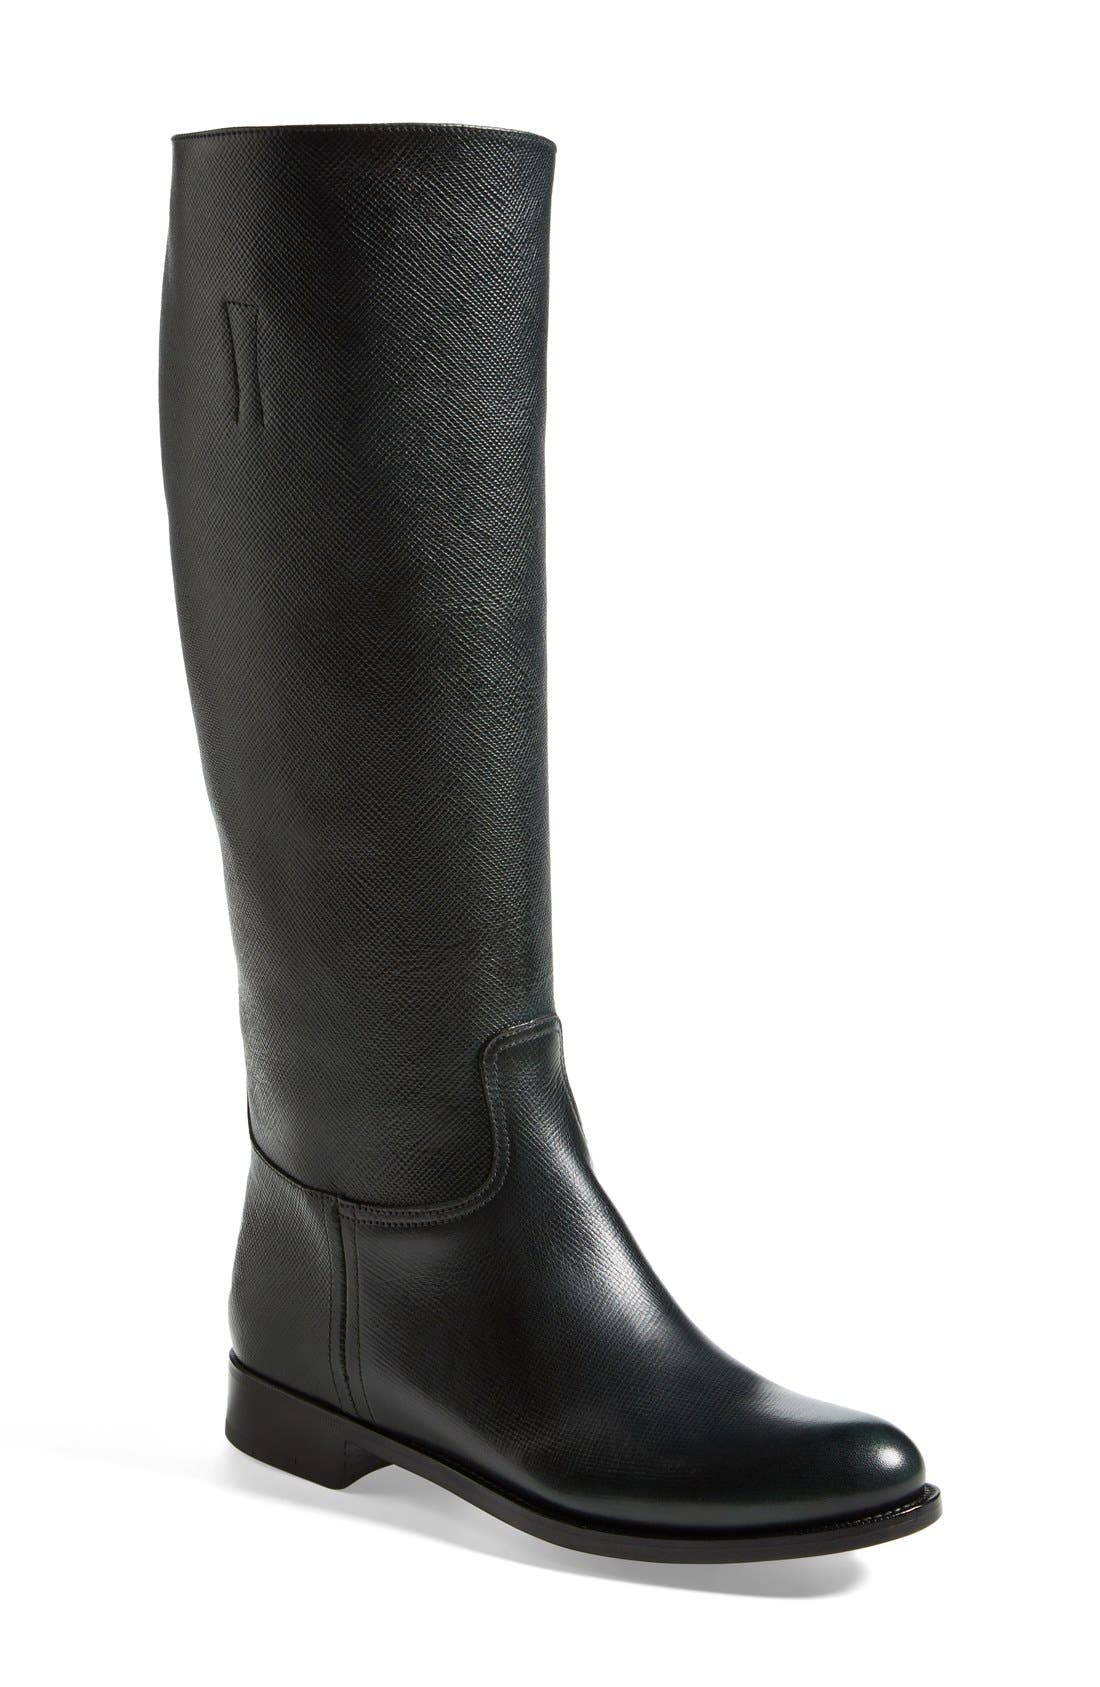 Main Image - Prada Riding Boot (Women)